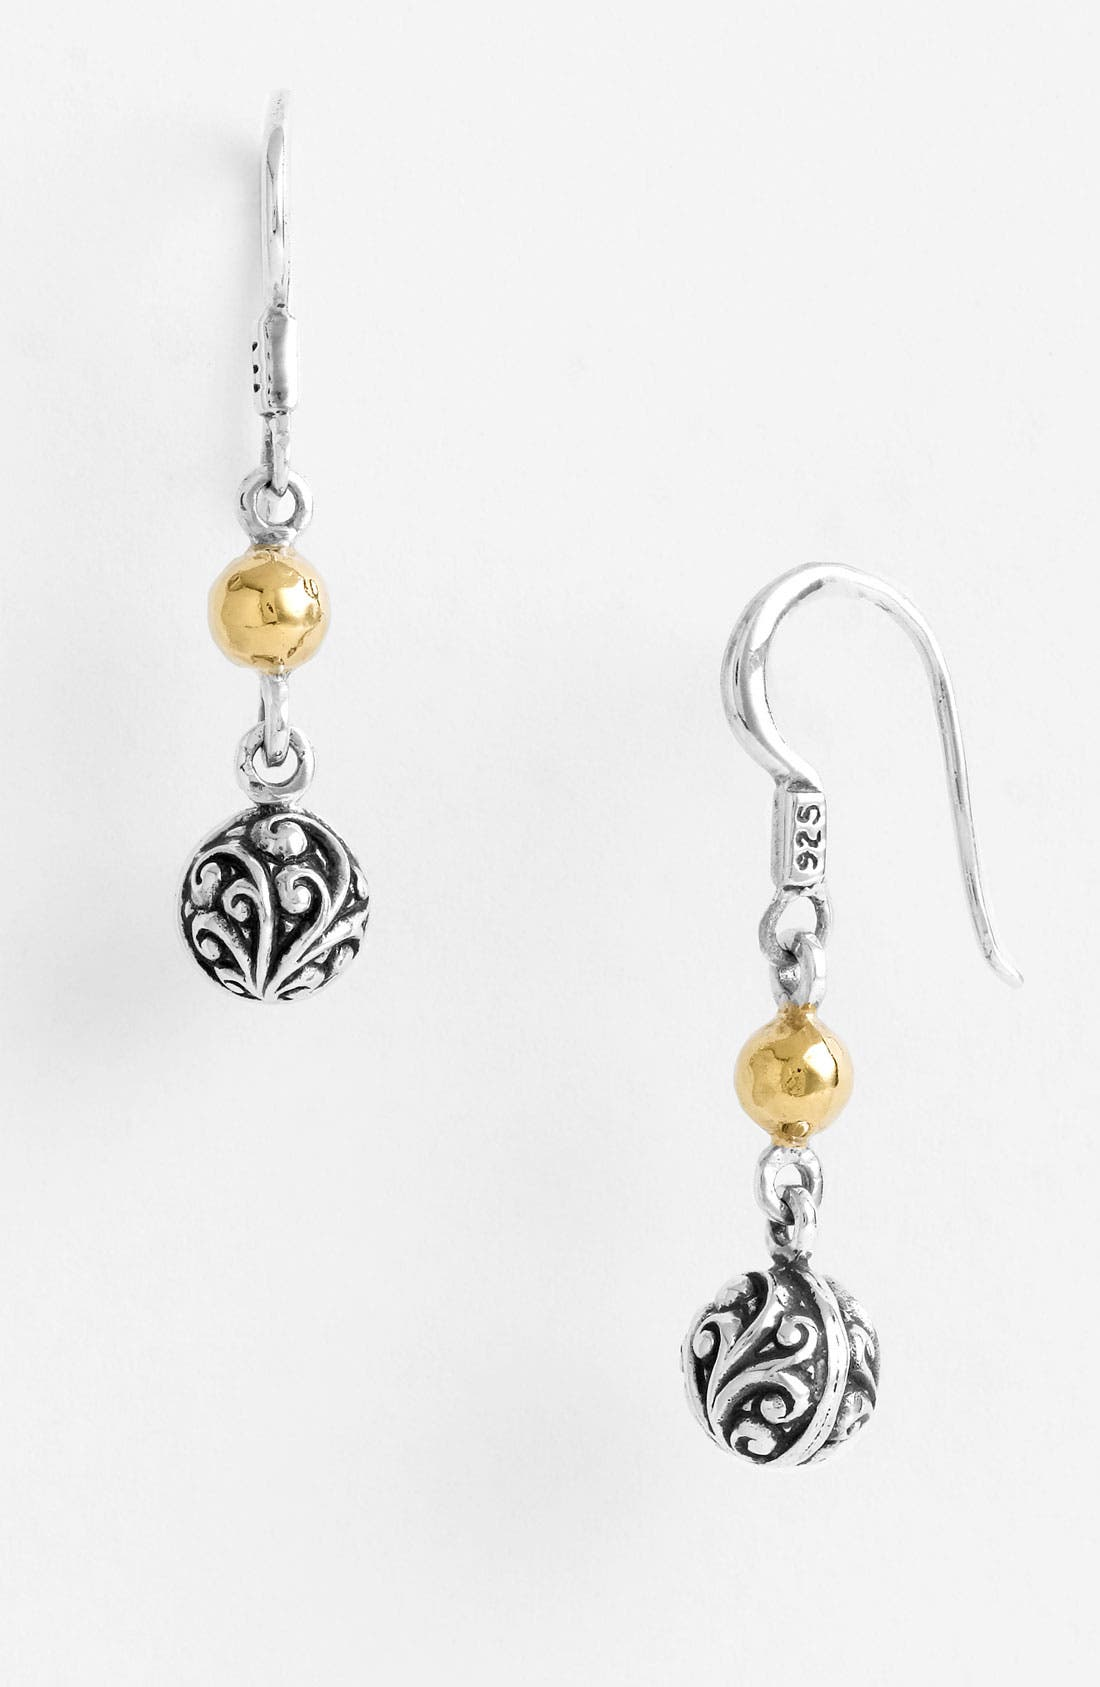 Alternate Image 1 Selected - Lois Hill 'Repousse' Two Tone Ball Drop Earrings